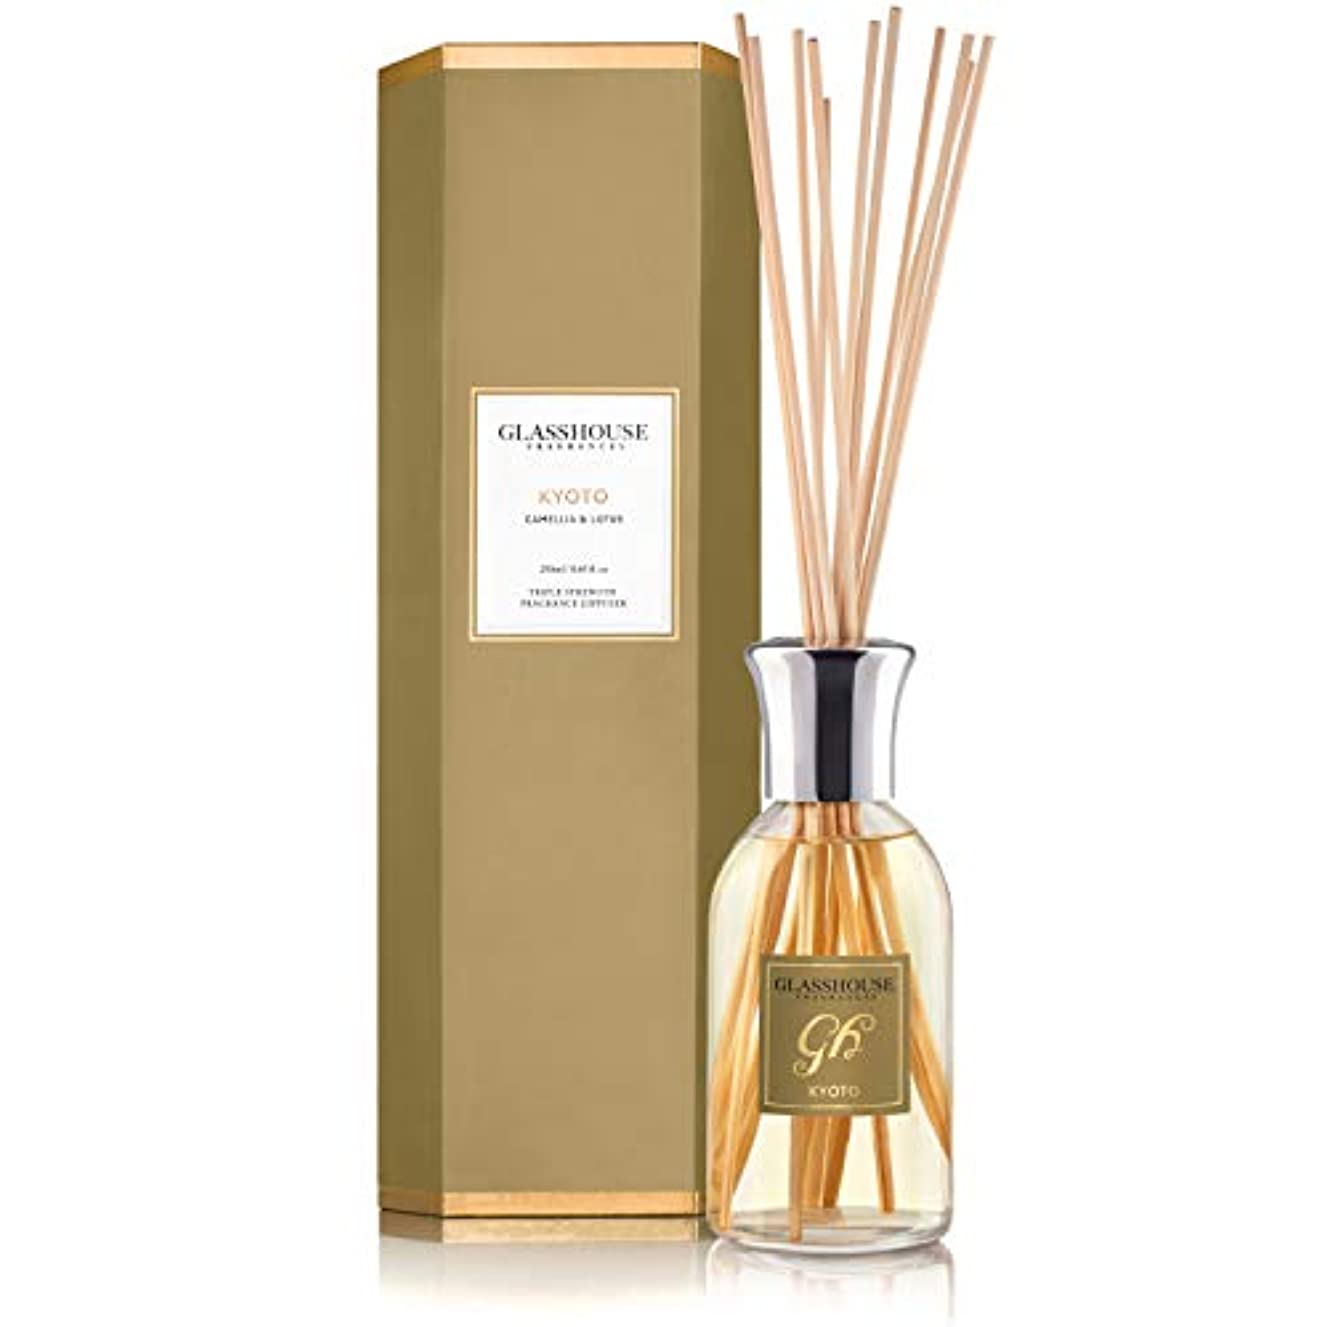 グラスハウス Triple Strength Fragrance Diffuser - Kyoto (Camellia & Lotus) 250ml/8.45oz並行輸入品